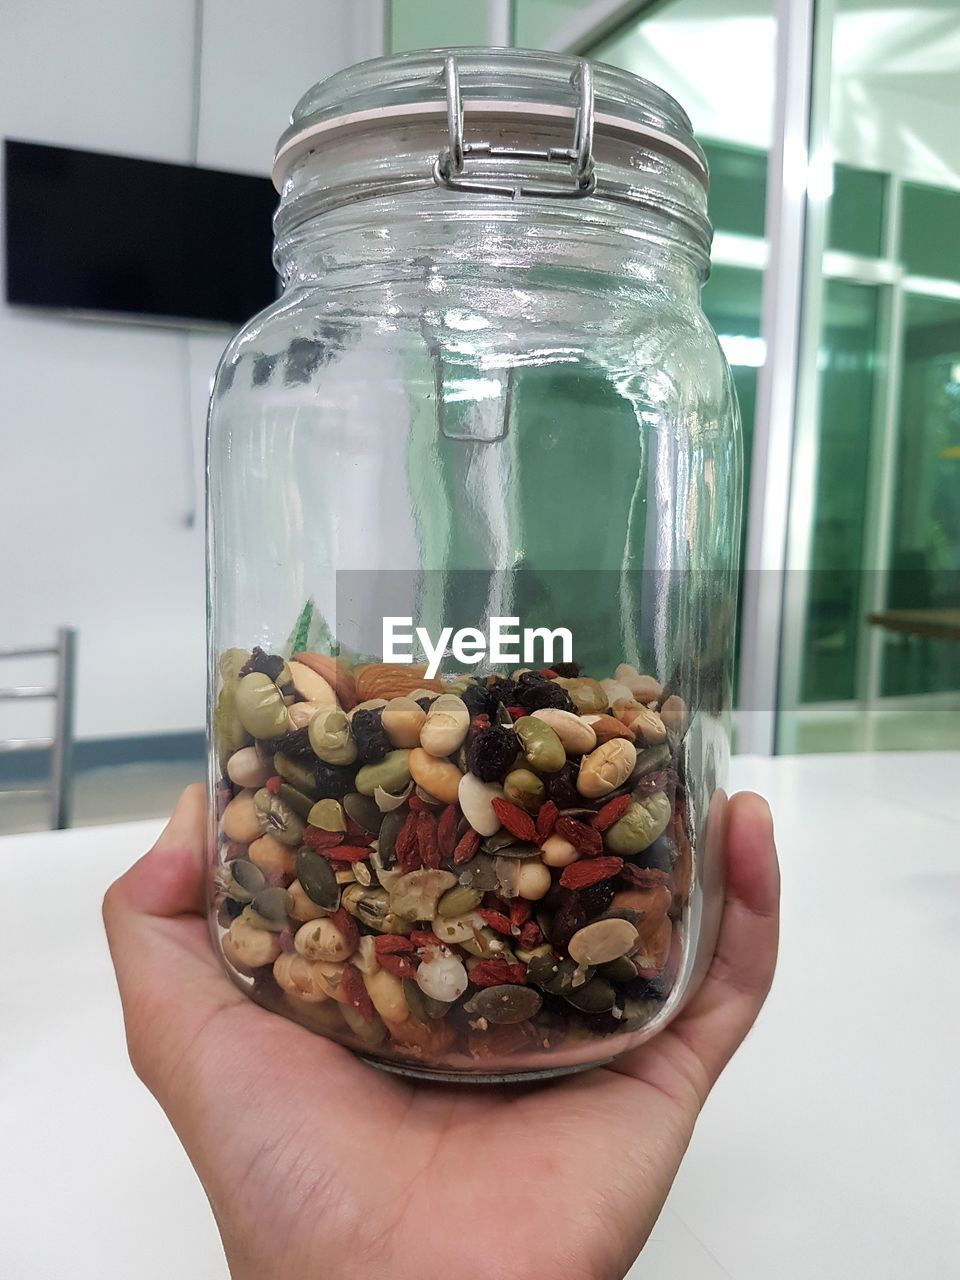 human hand, one person, jar, hand, holding, transparent, human body part, real people, container, glass - material, unrecognizable person, close-up, focus on foreground, indoors, lifestyles, finger, personal perspective, human finger, body part